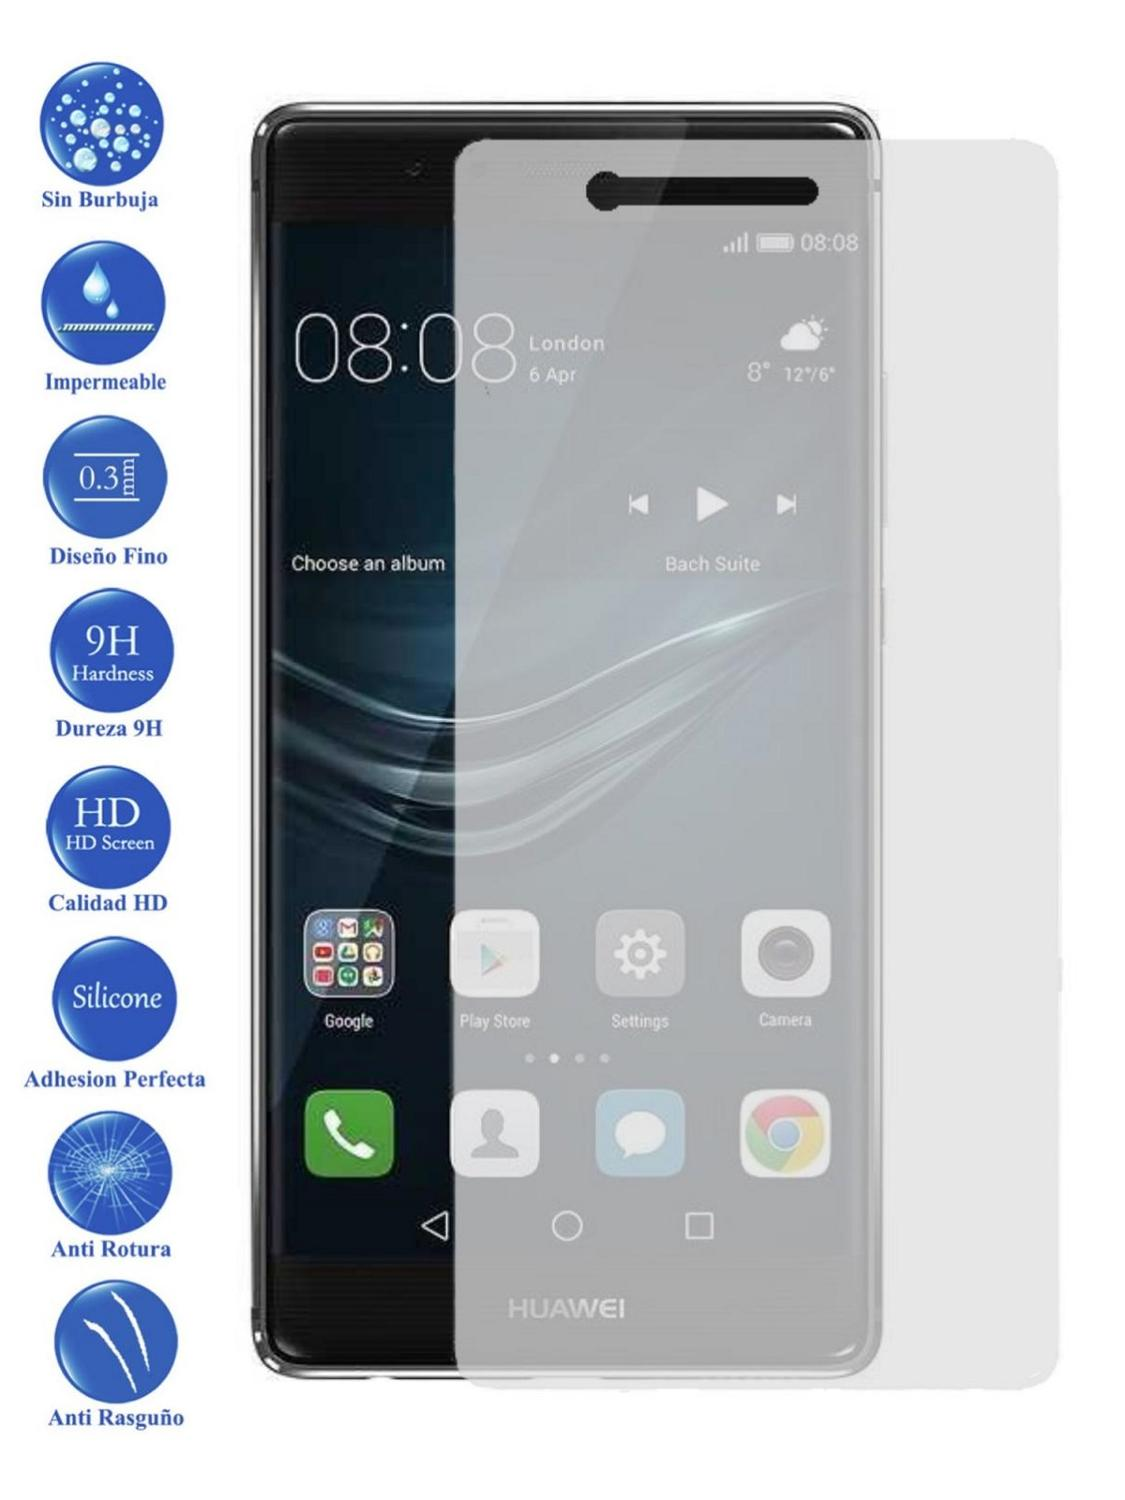 LCD Cover Screen Protector Tempered Glass For Huawei P6 P7 P8 P9 Lite Smart Lite Plus Choose Model